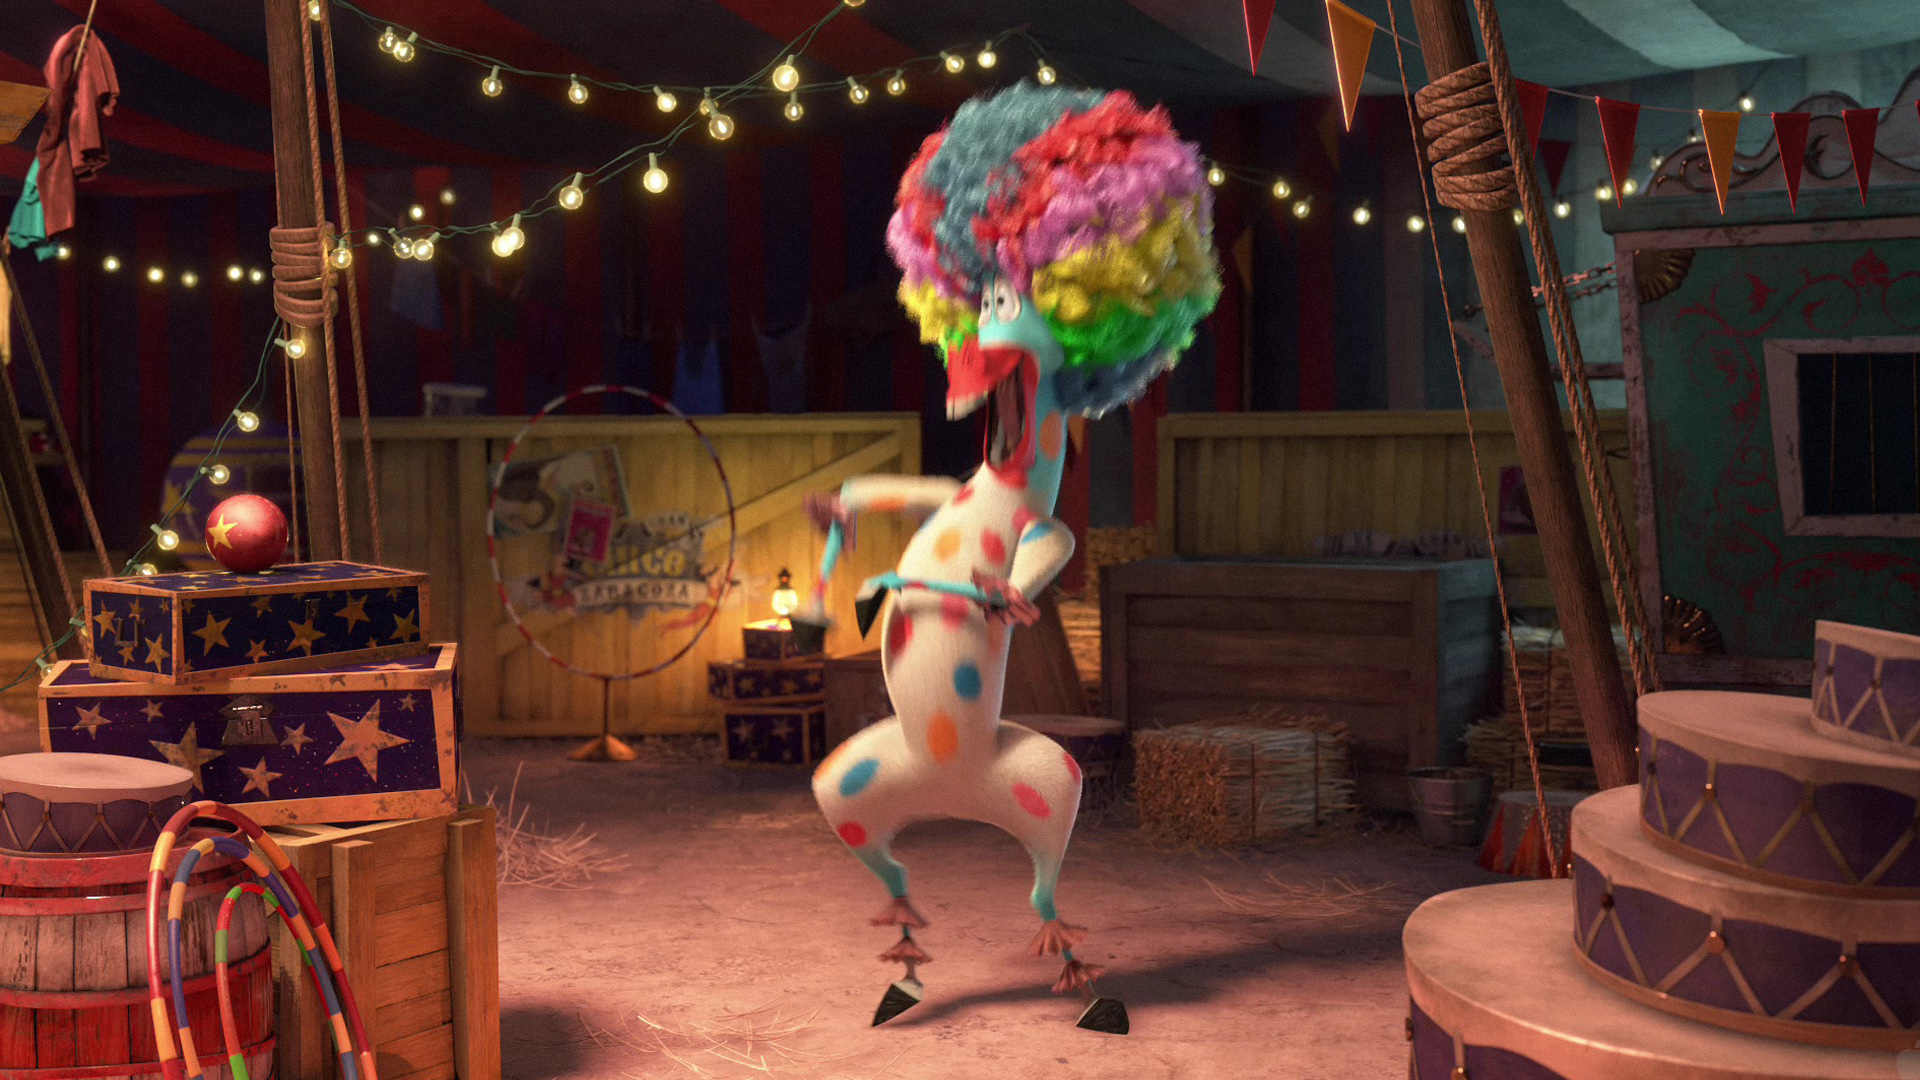 New Hollywood Movies Hd Wallpapers Madagascar 3 Europe S Most Wanted Hd Wallpapers All Hd